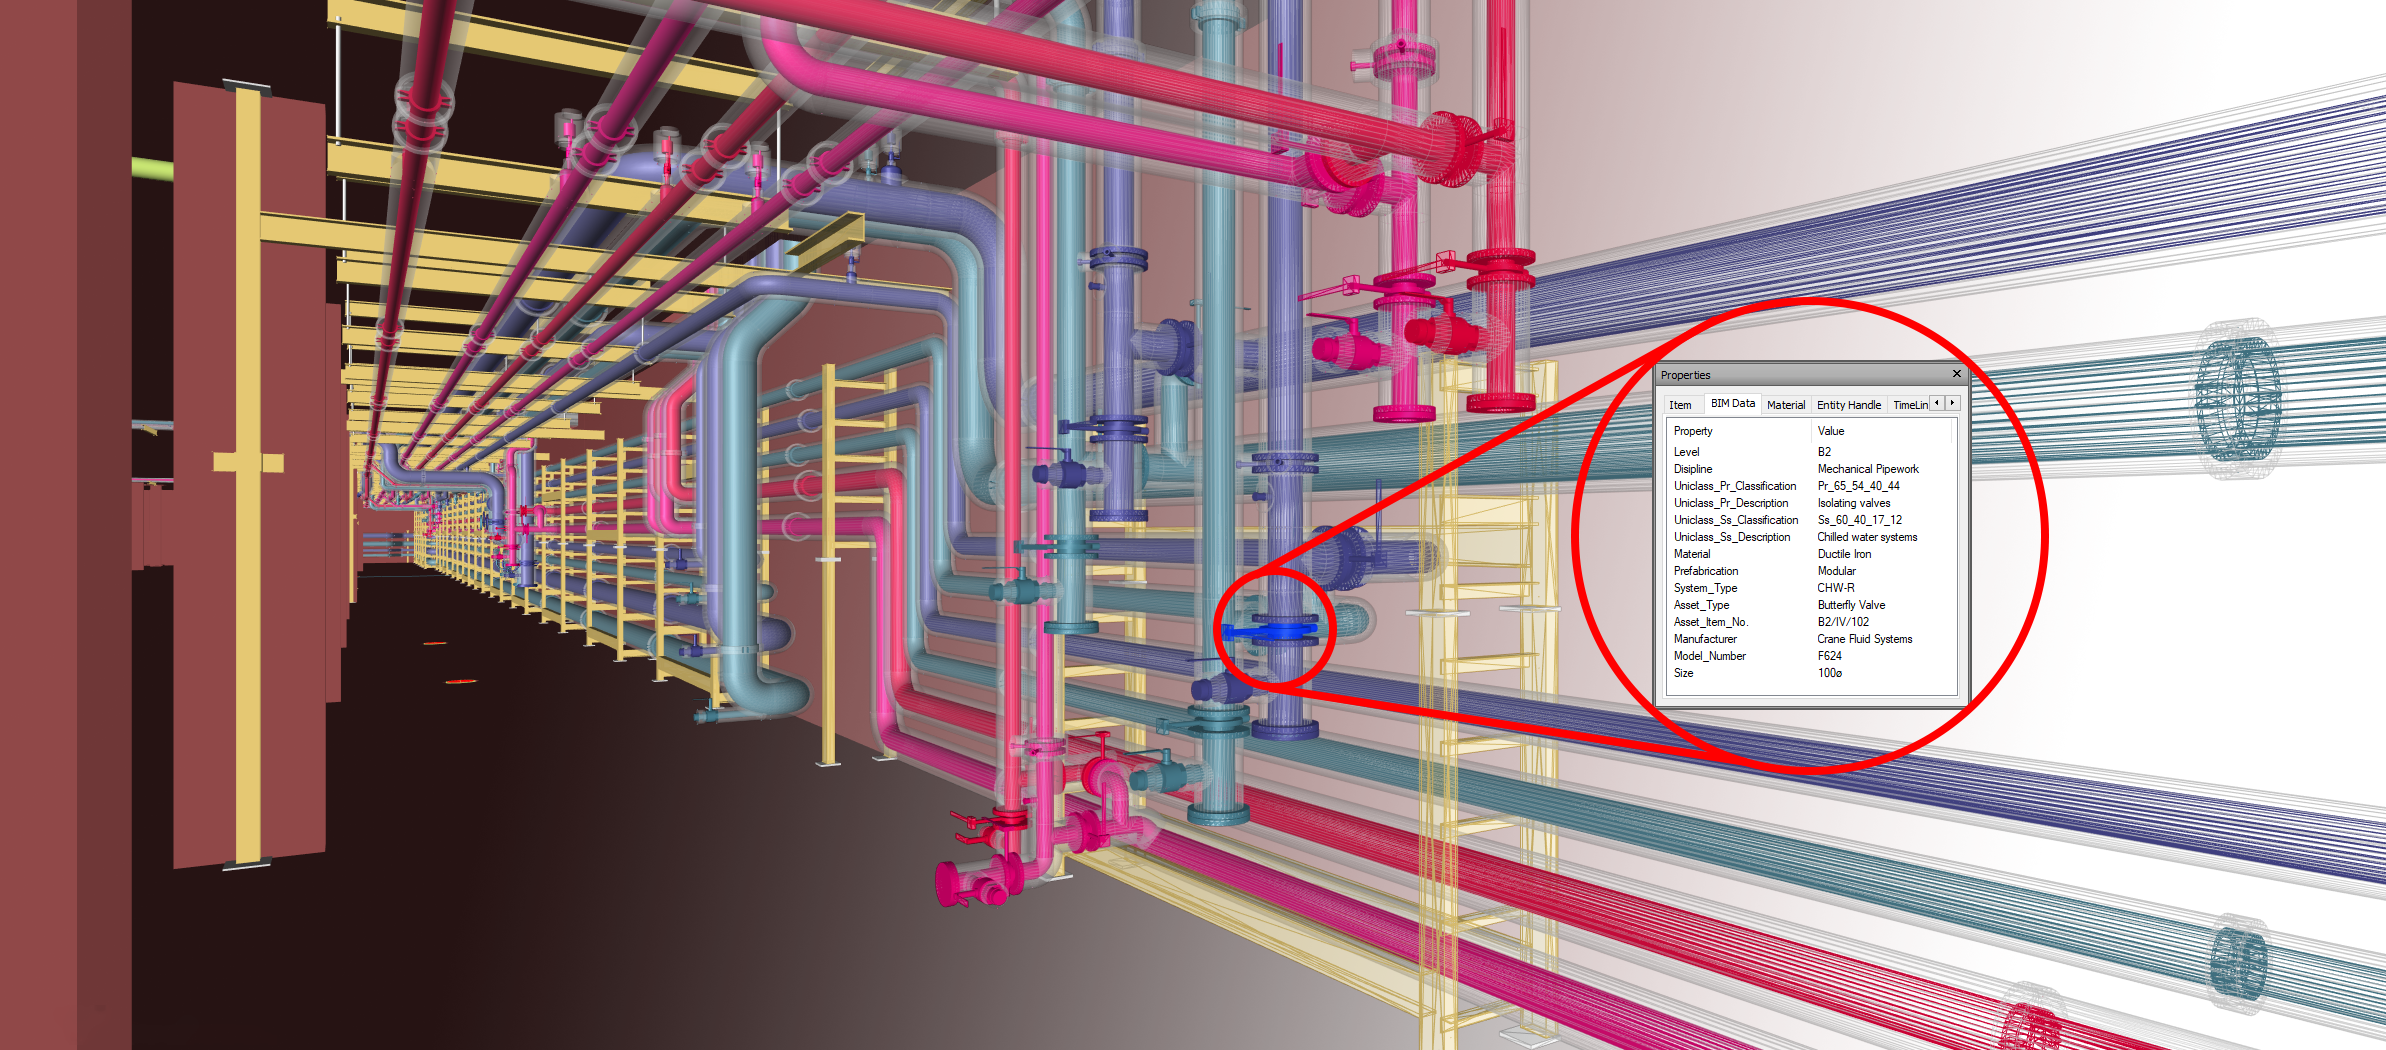 CAD SERVICES Bim modelling and data